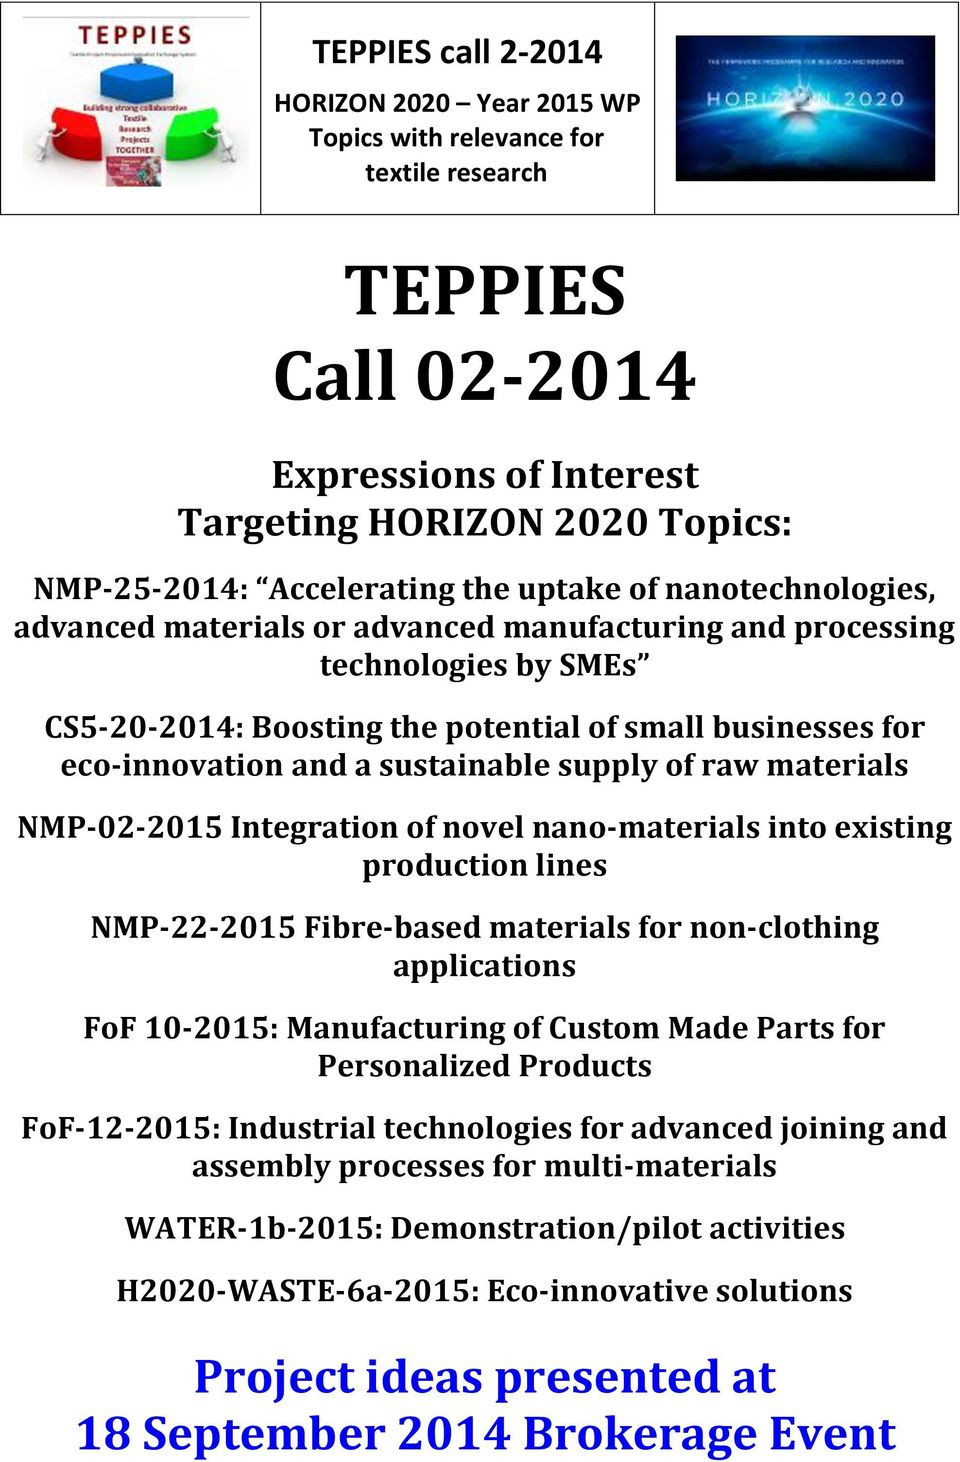 production lines NMP-22-2015 Fibre-based materials for non-clothing applications FoF 10-2015: Manufacturing of Custom Made Parts for Personalized Products FoF-12-2015: Industrial technologies for